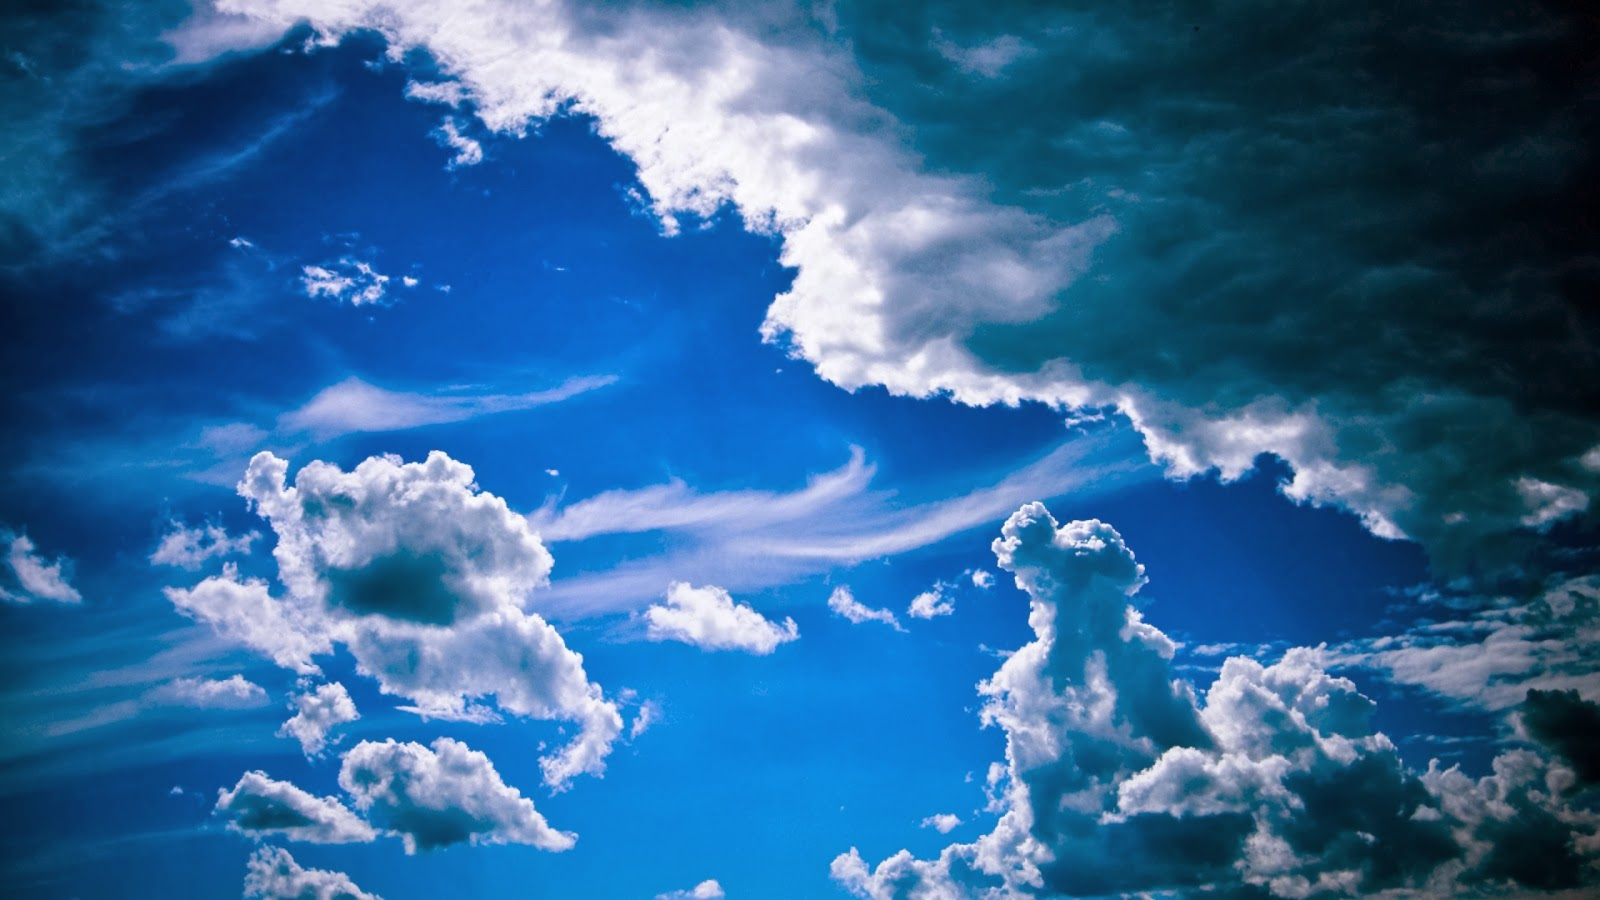 Blue Cloudy Sky Beautiful Nature Images And Wallpapers